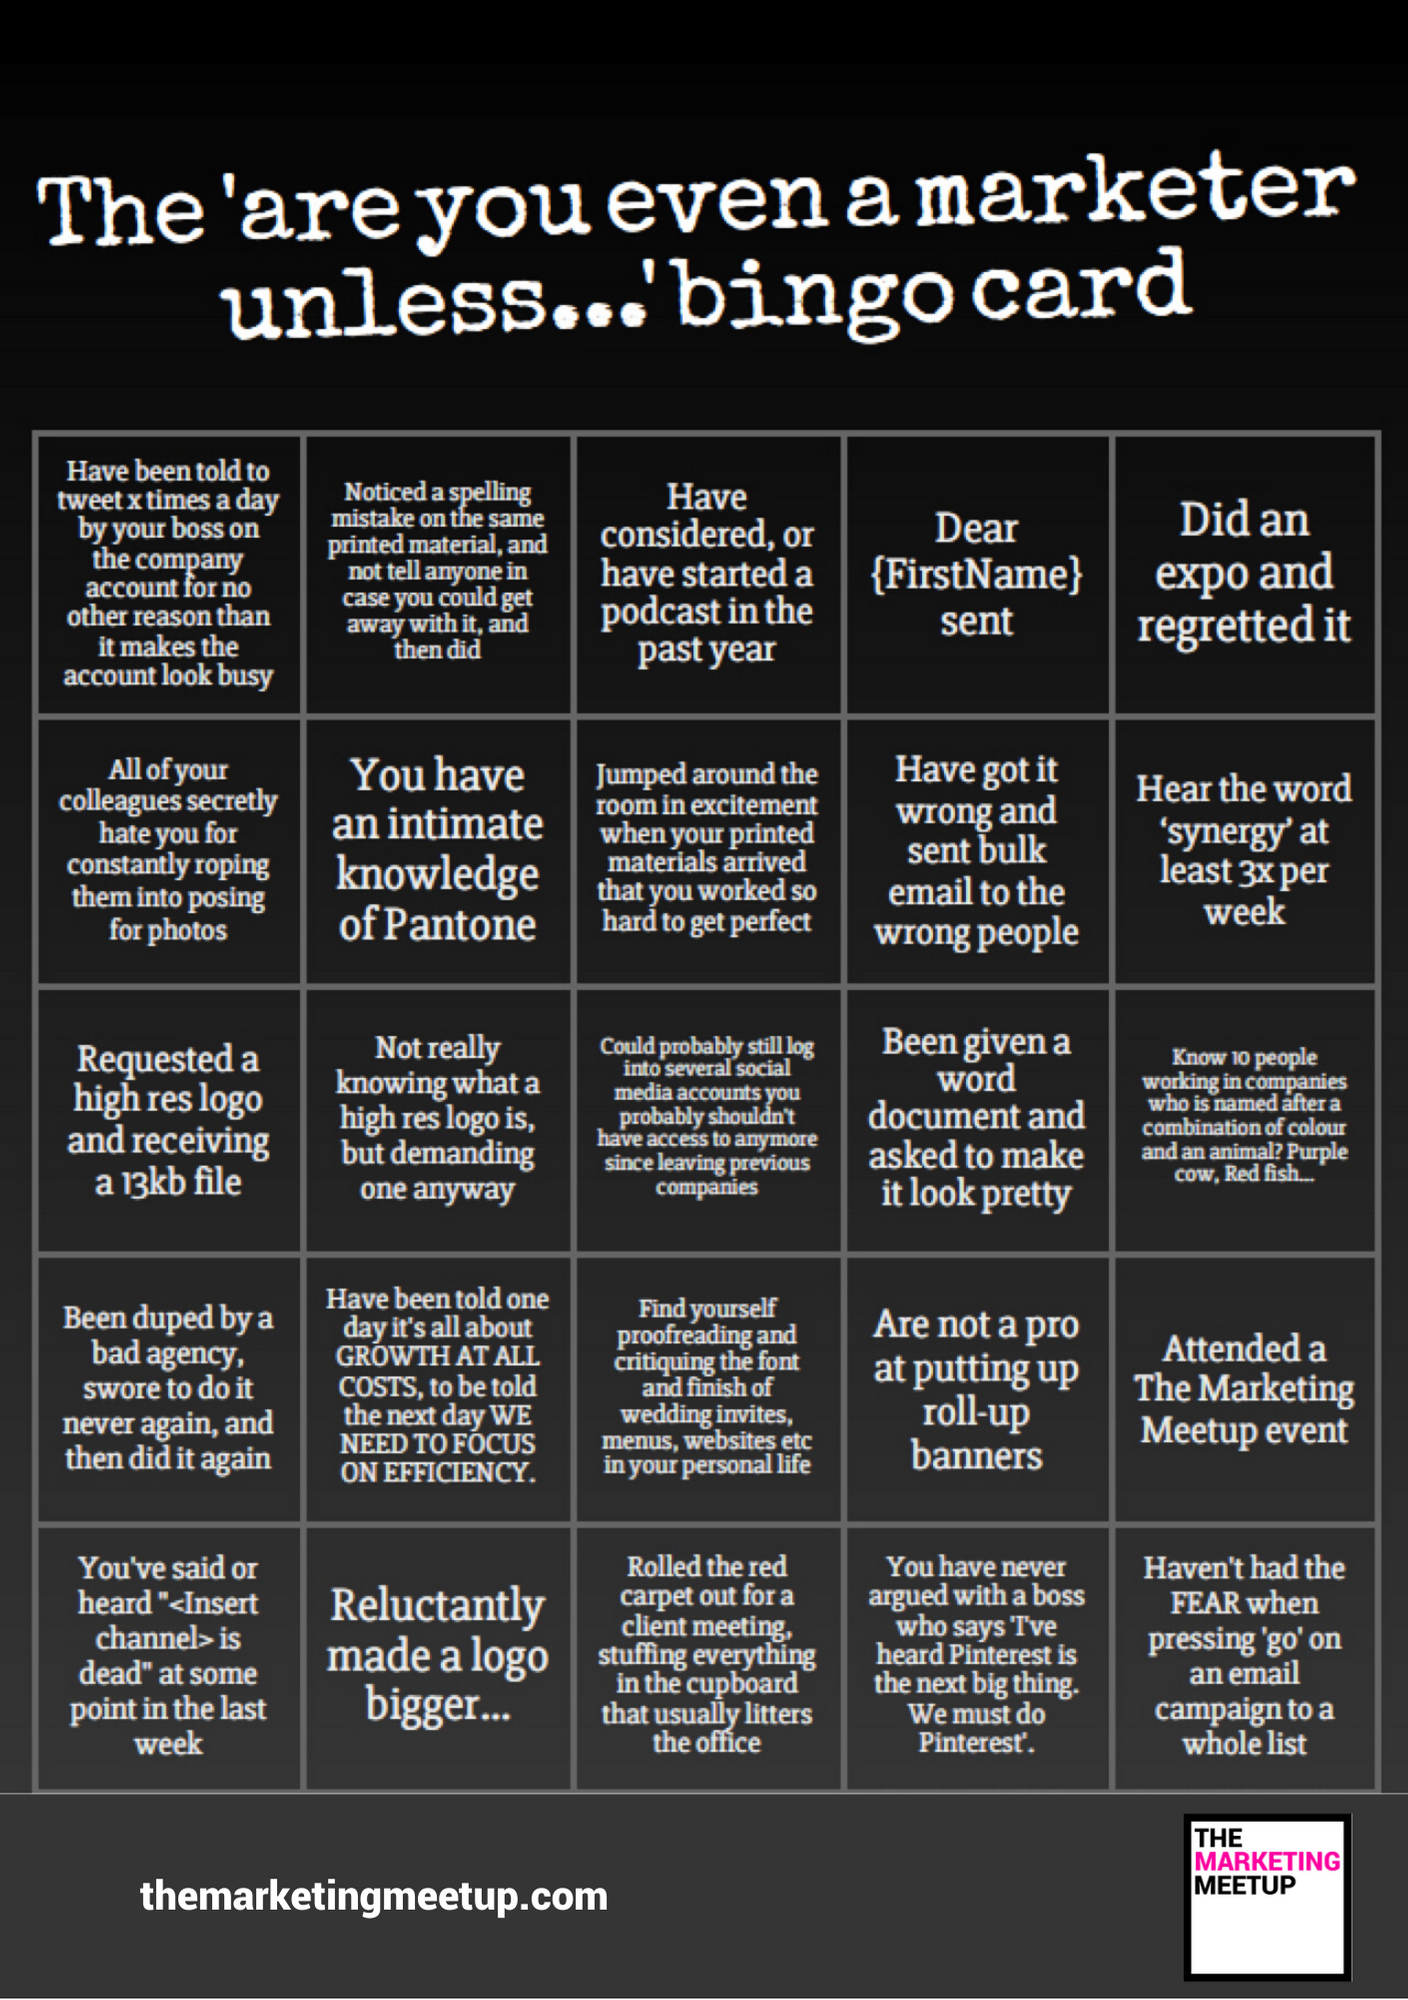 Marketers bingo